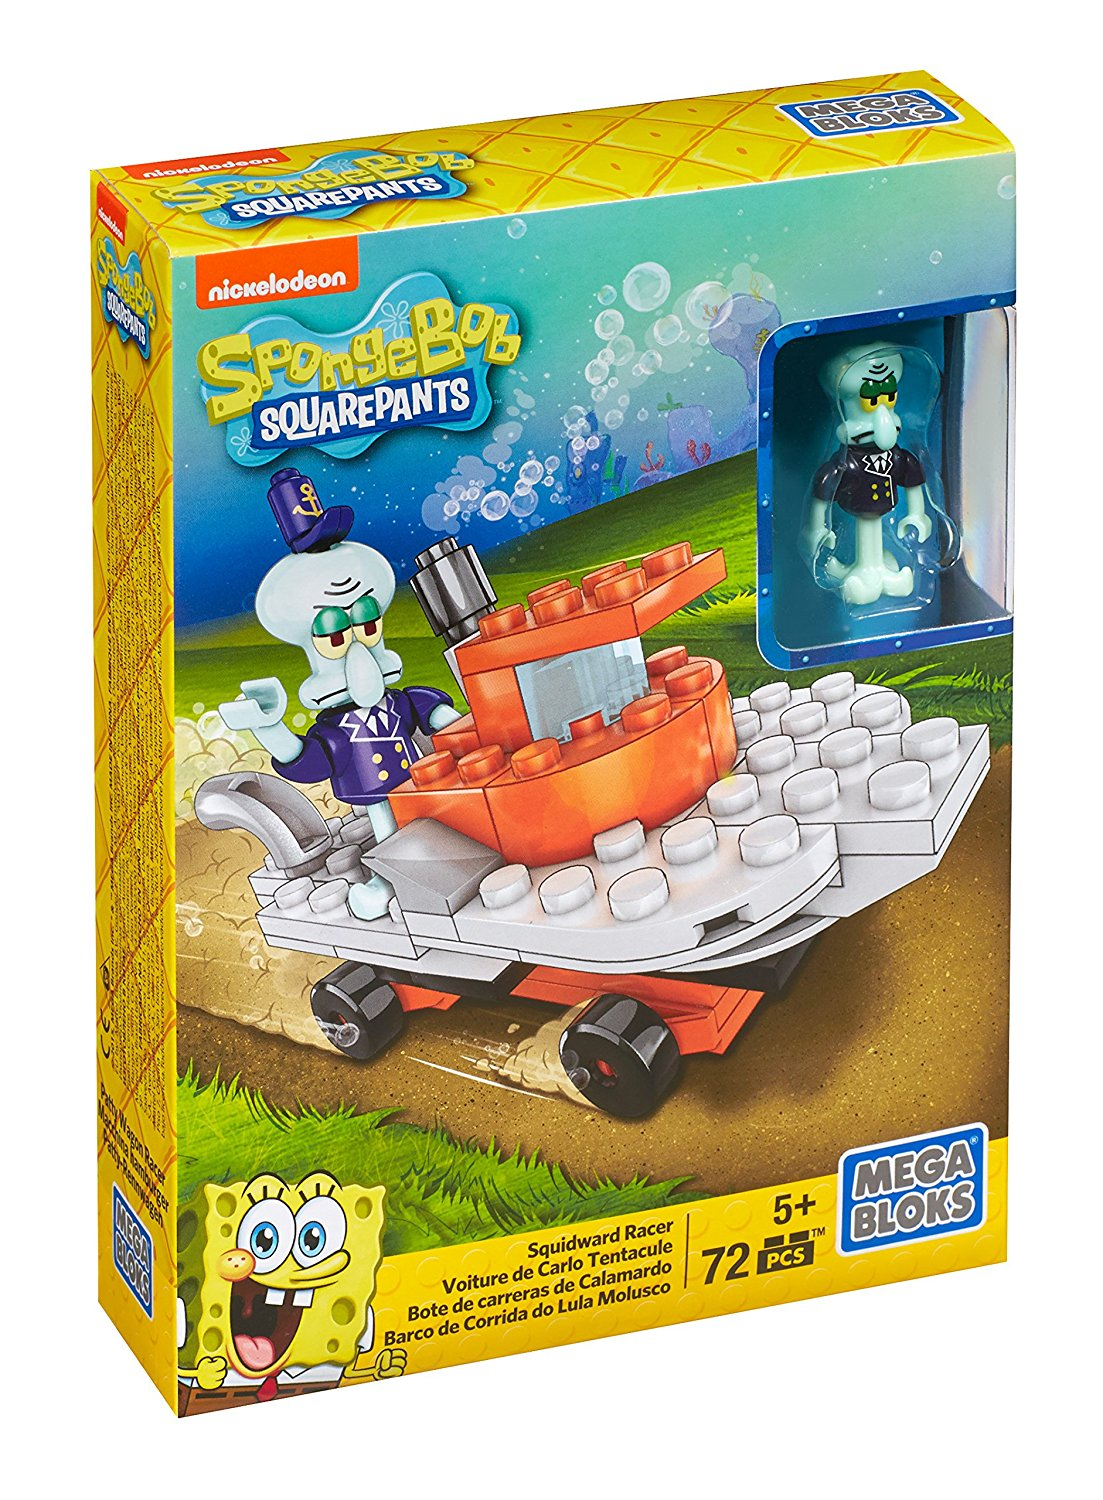 SpongeBob SquarePants Mr. Krabs Racer Playset, One mr. Krabs micro action figure. By Mega Bloks by